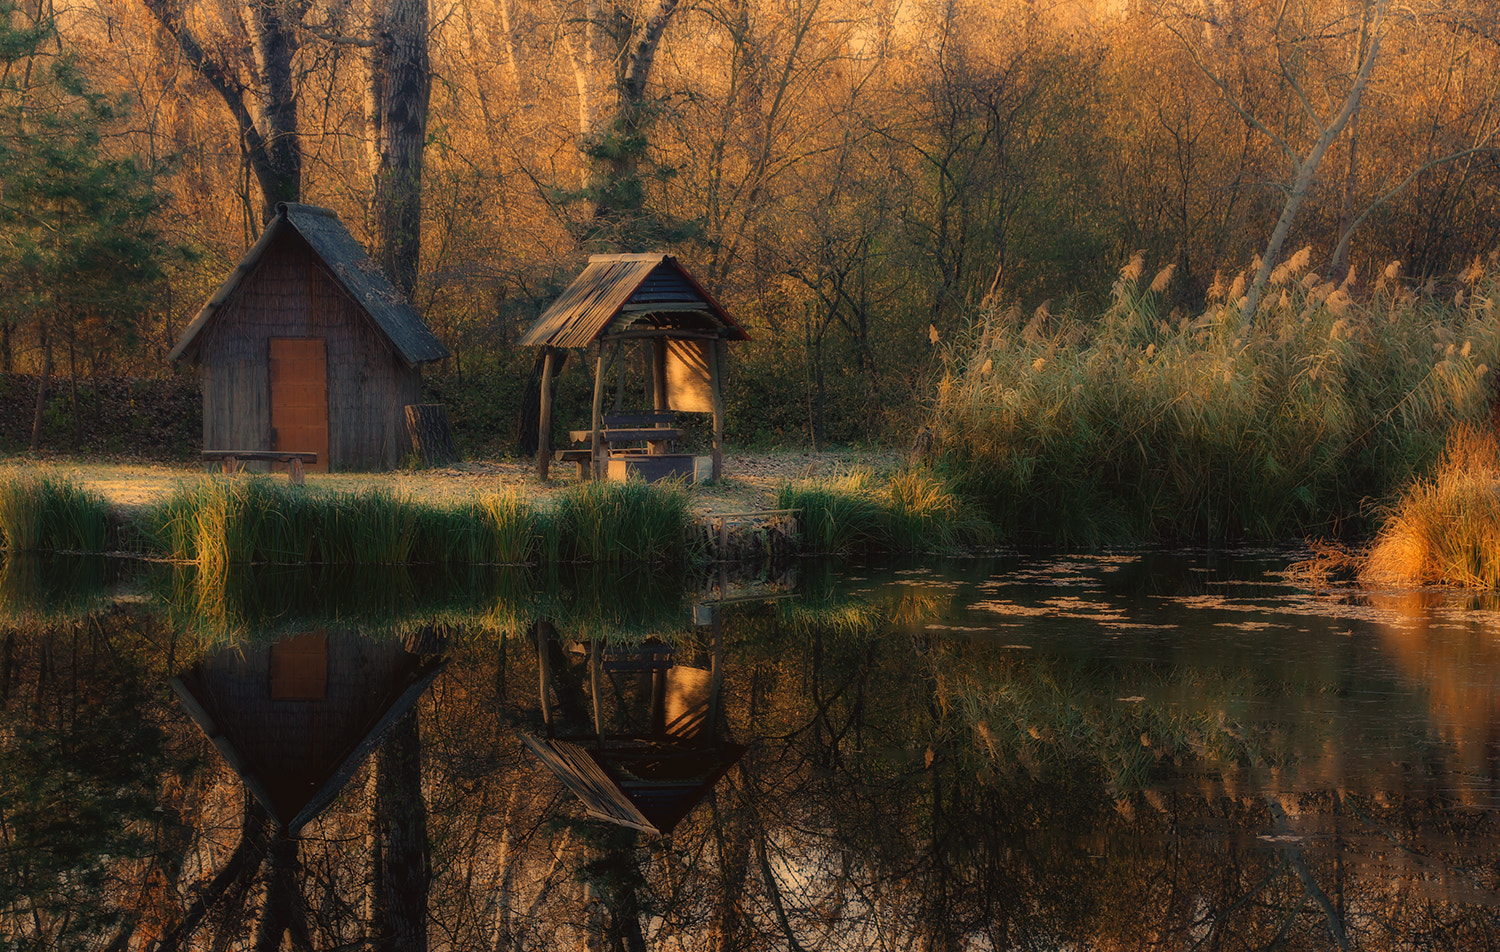 Photograph The Lake House by Andy 58 on 500px